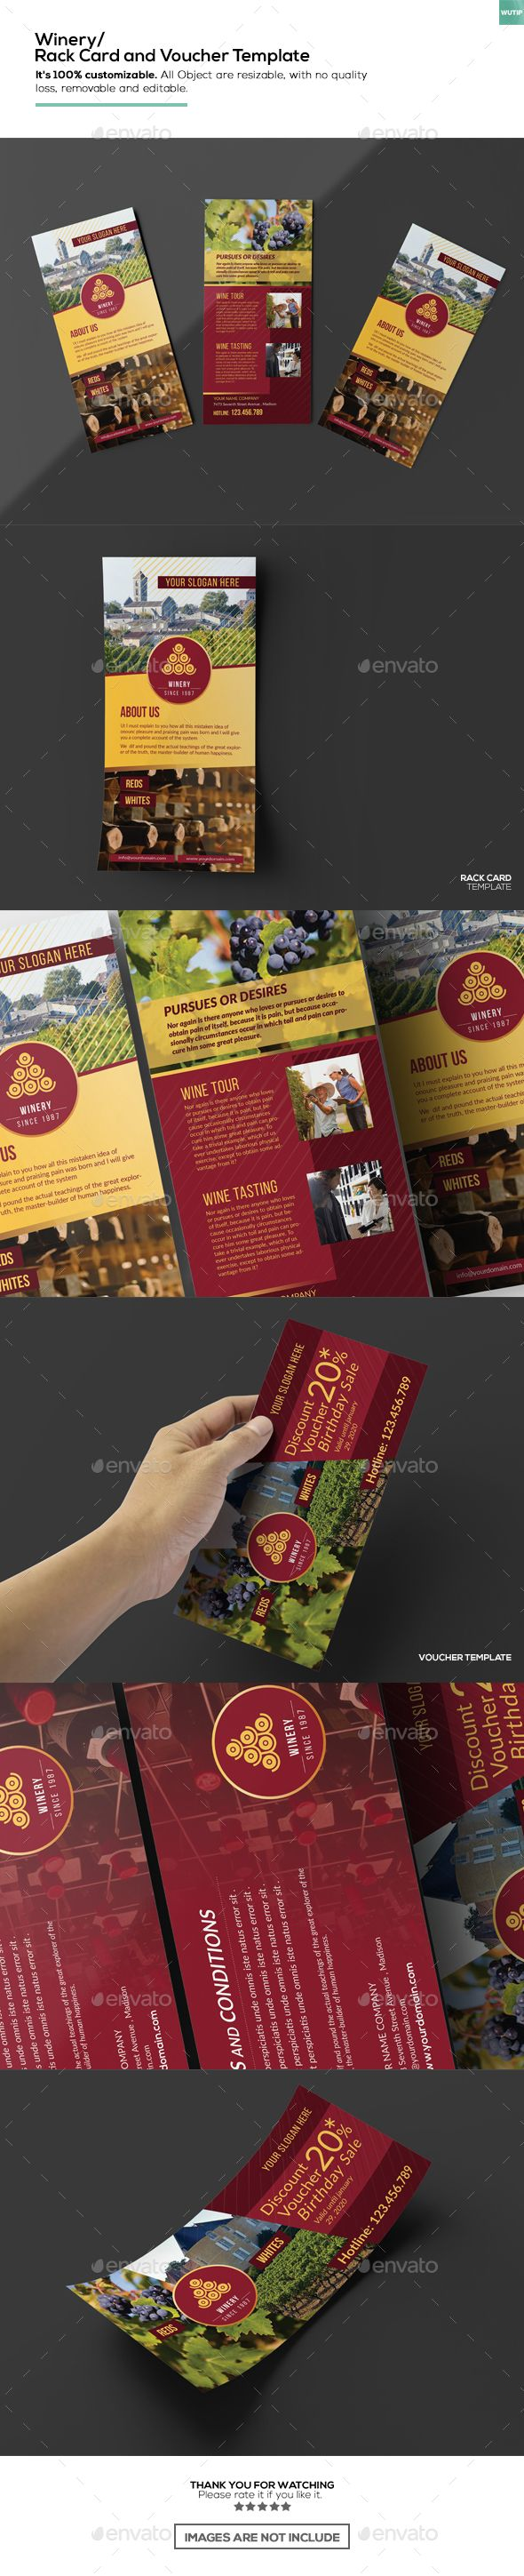 Winery Rack Card And Voucher Template Print Templates Template - Rack card template photoshop